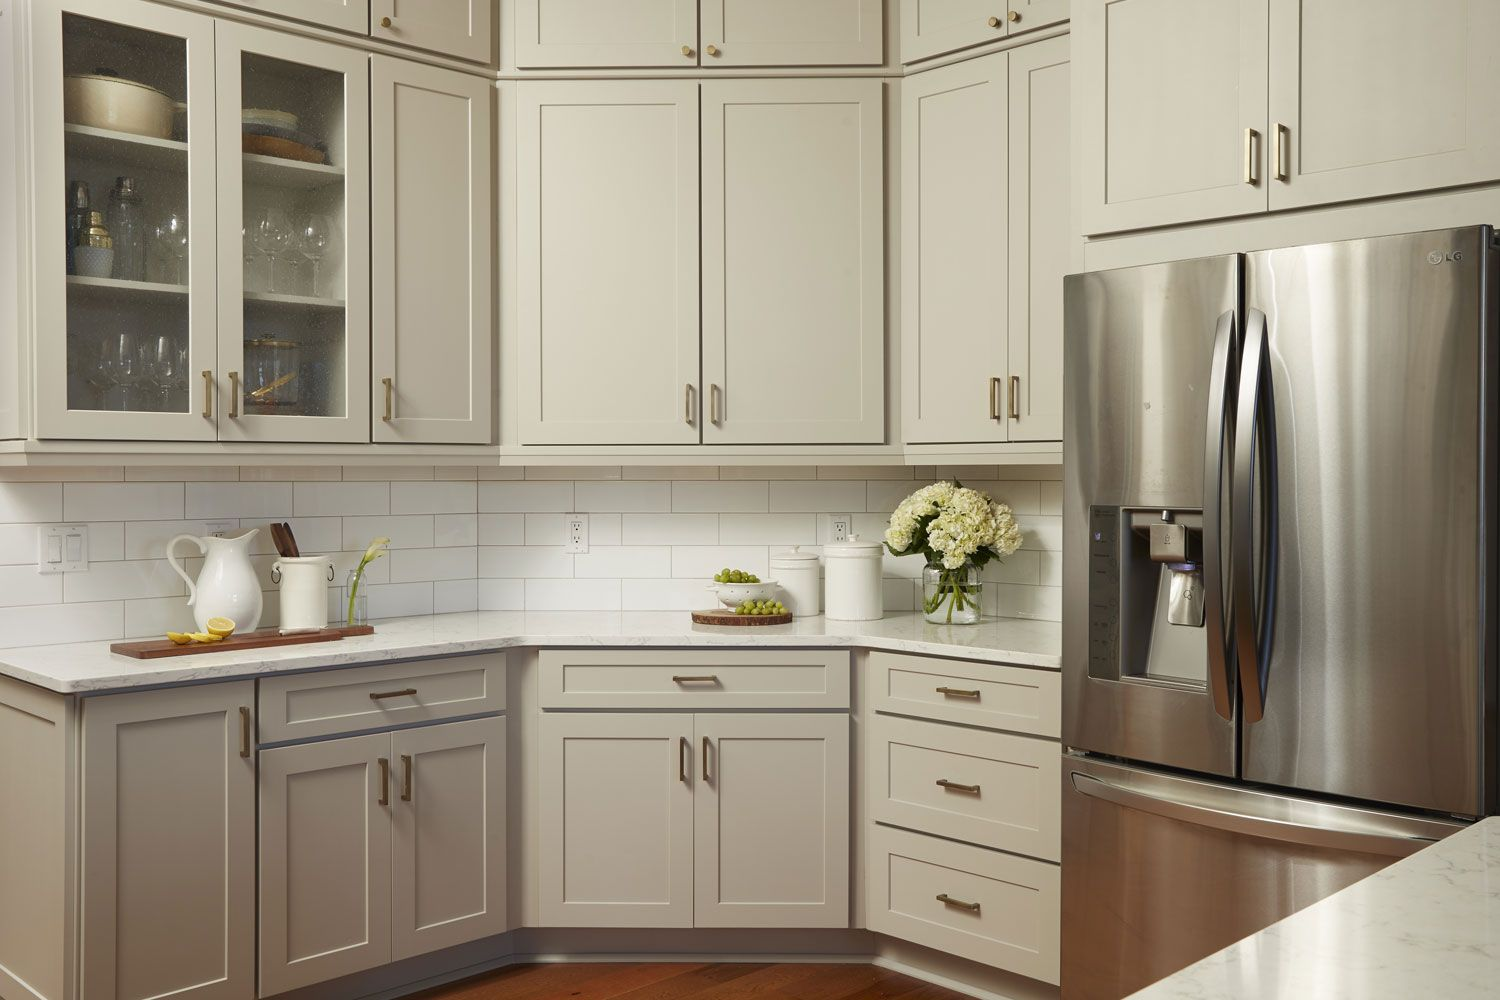 Transitional Gray Kitchen Makes For A Unique And Inviting Space Types Of Kitchen Cabinets Kitchen Cabinets Kitchen Cabinets Home Depot